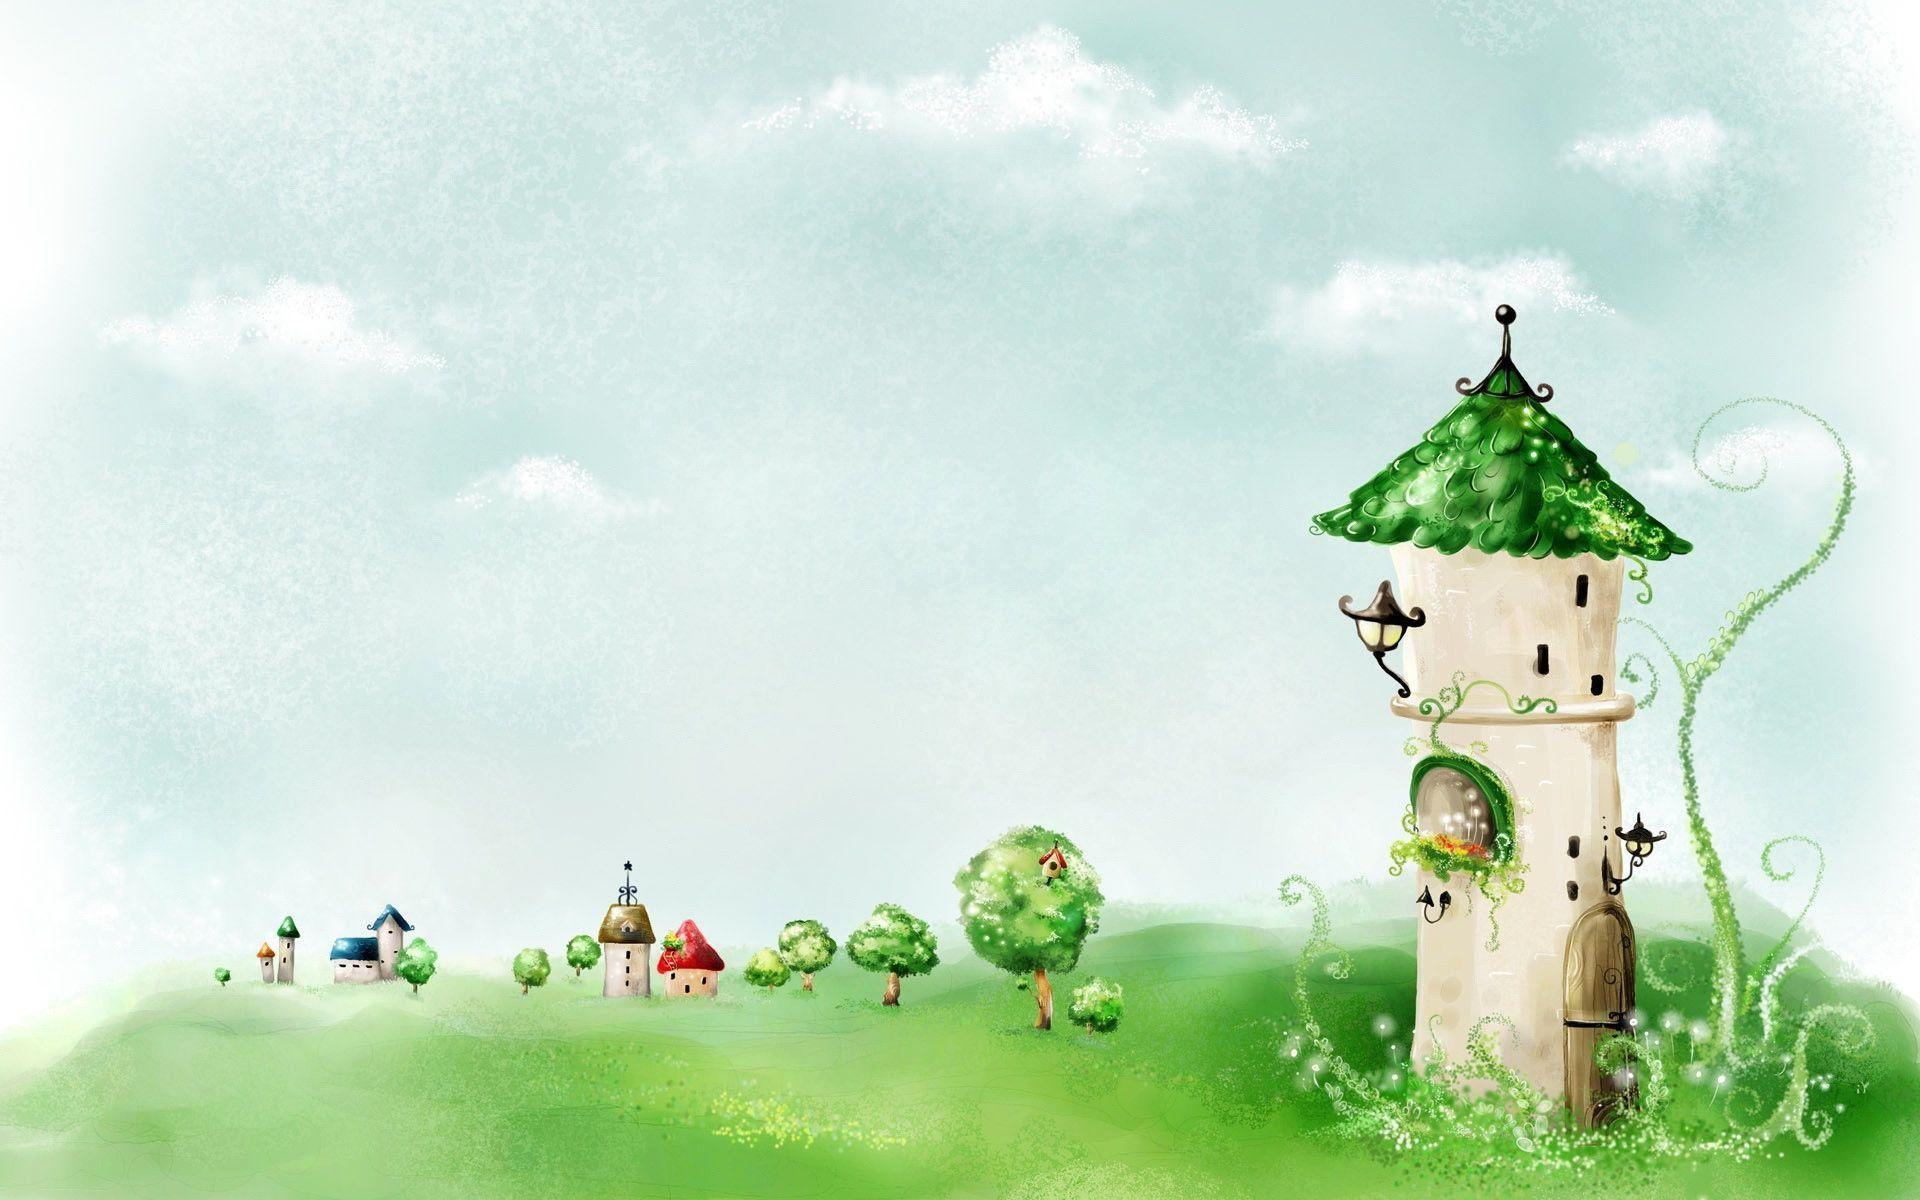 children backgrounds image - wallpaper cave